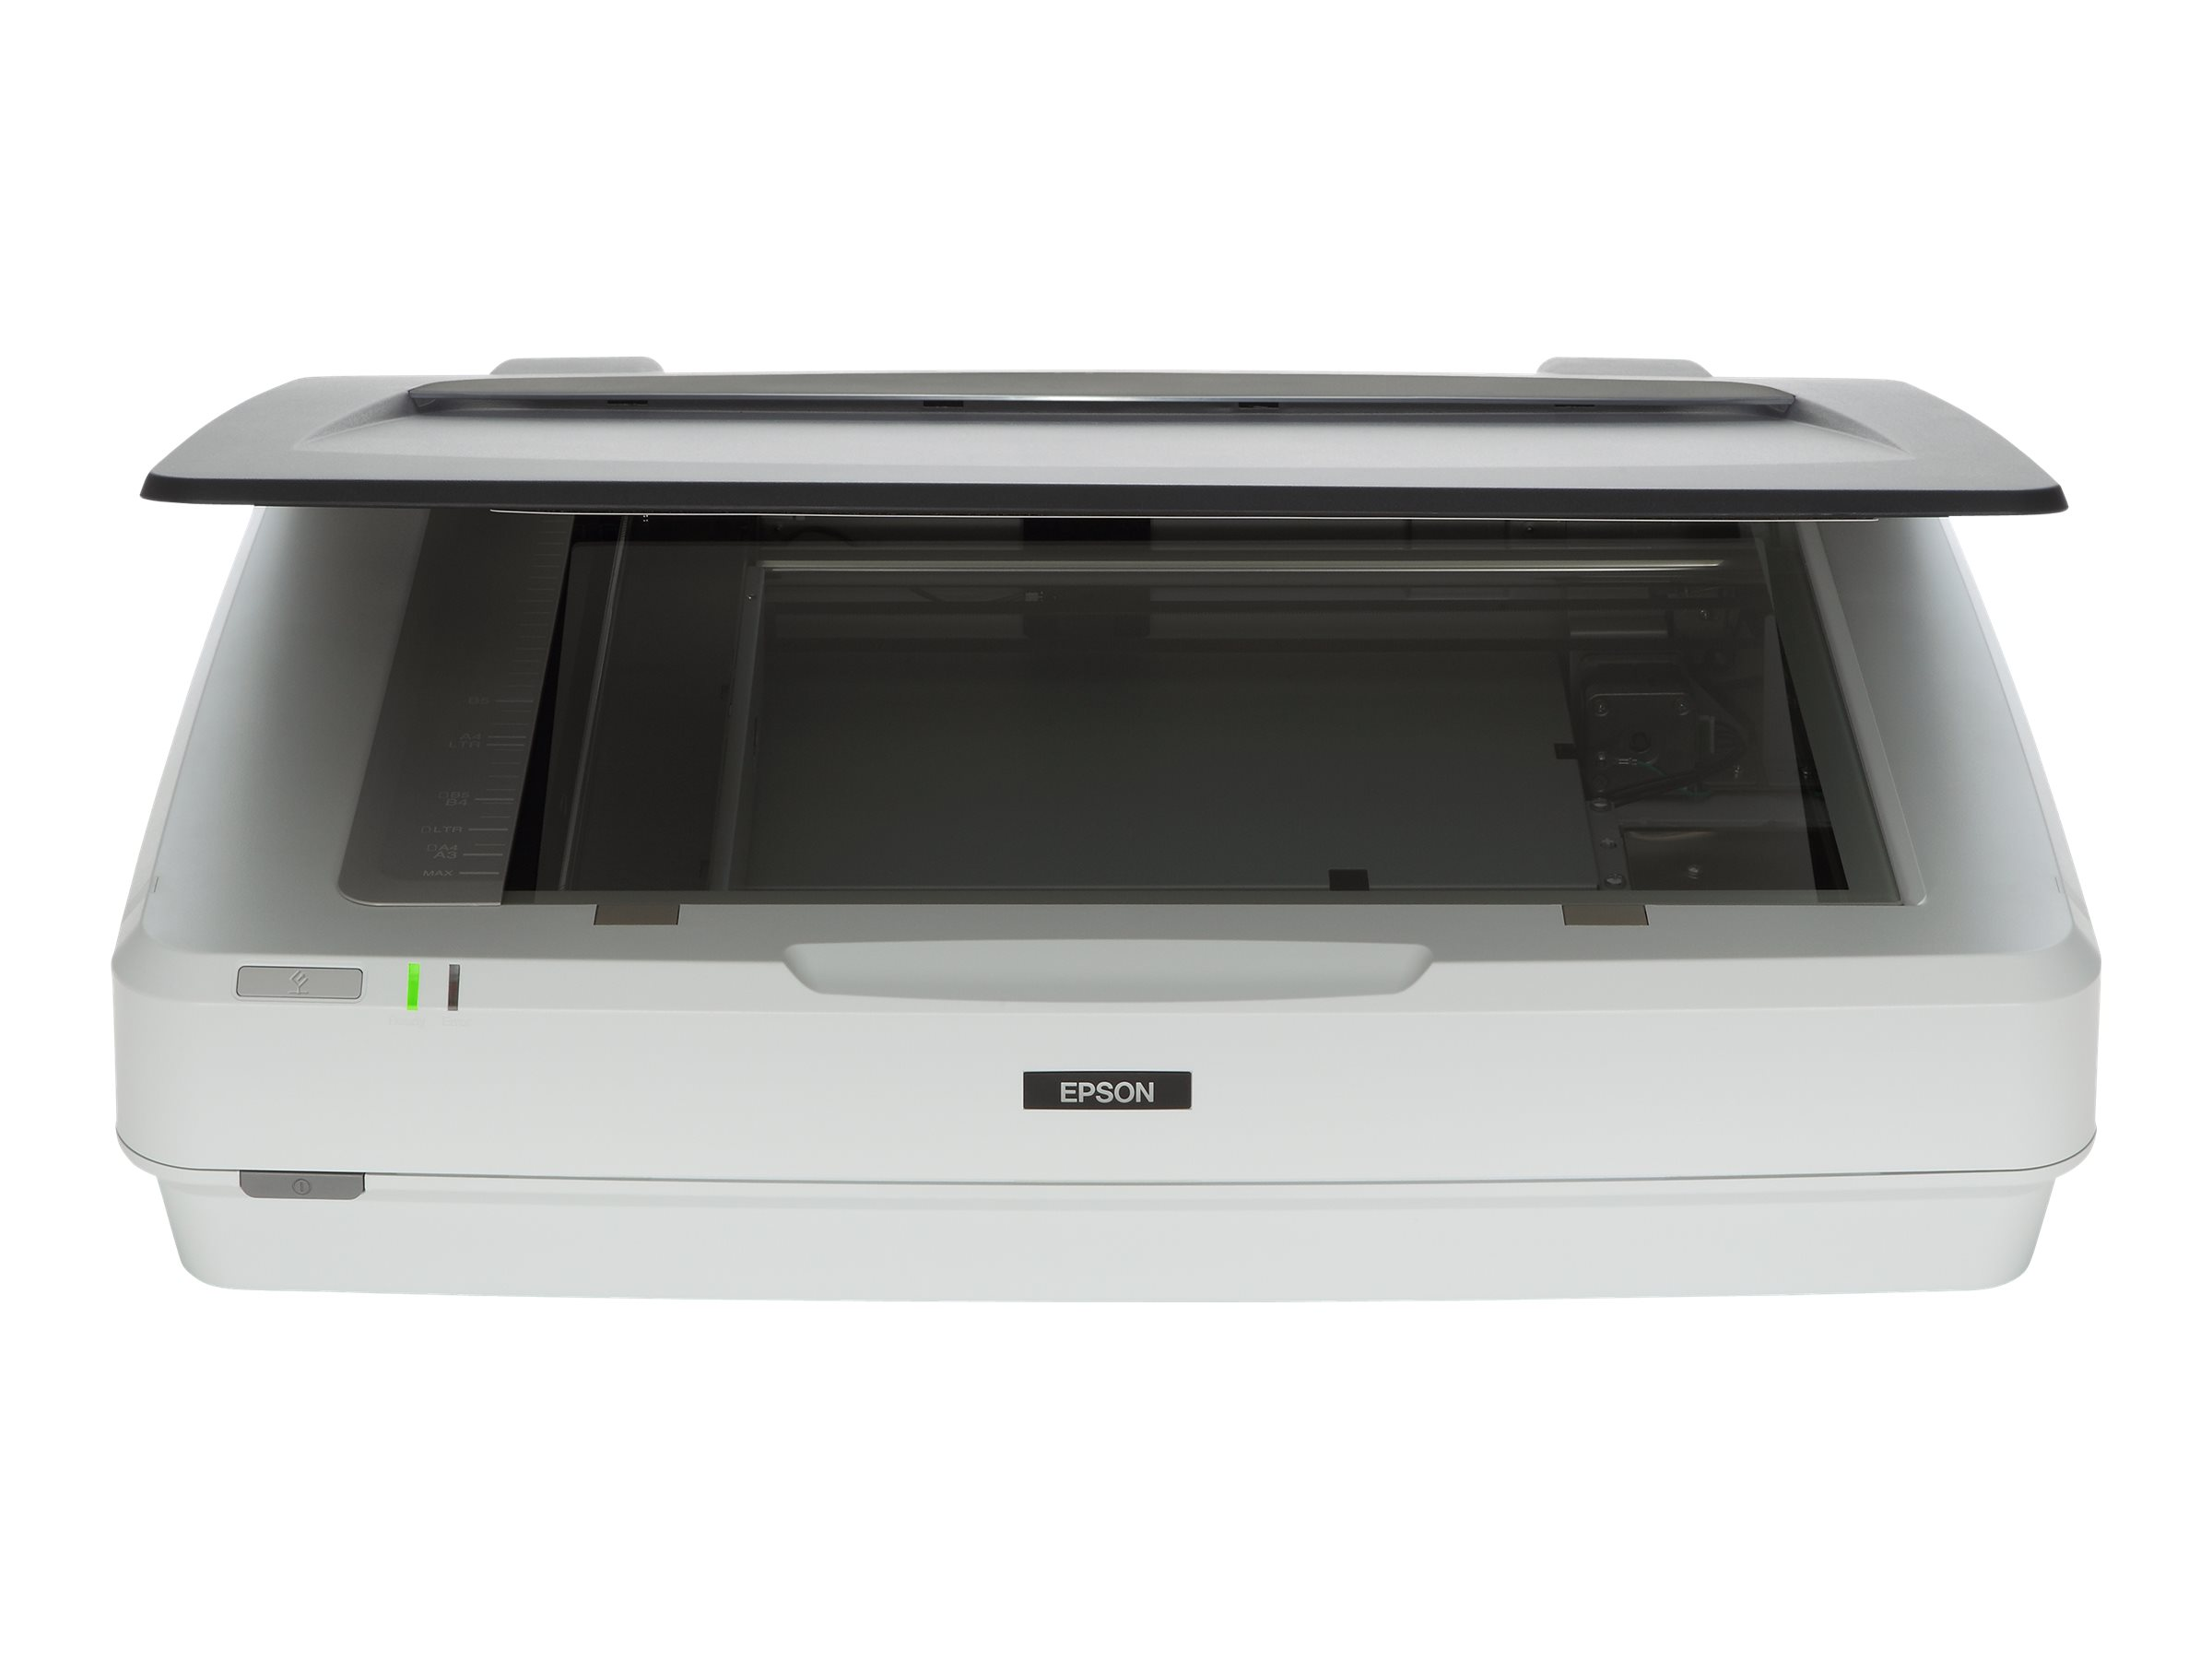 Image for Epson Expression 12000Xl Photo - Flatbed Scanner - Desktop - Usb 2.0 from Circuit City